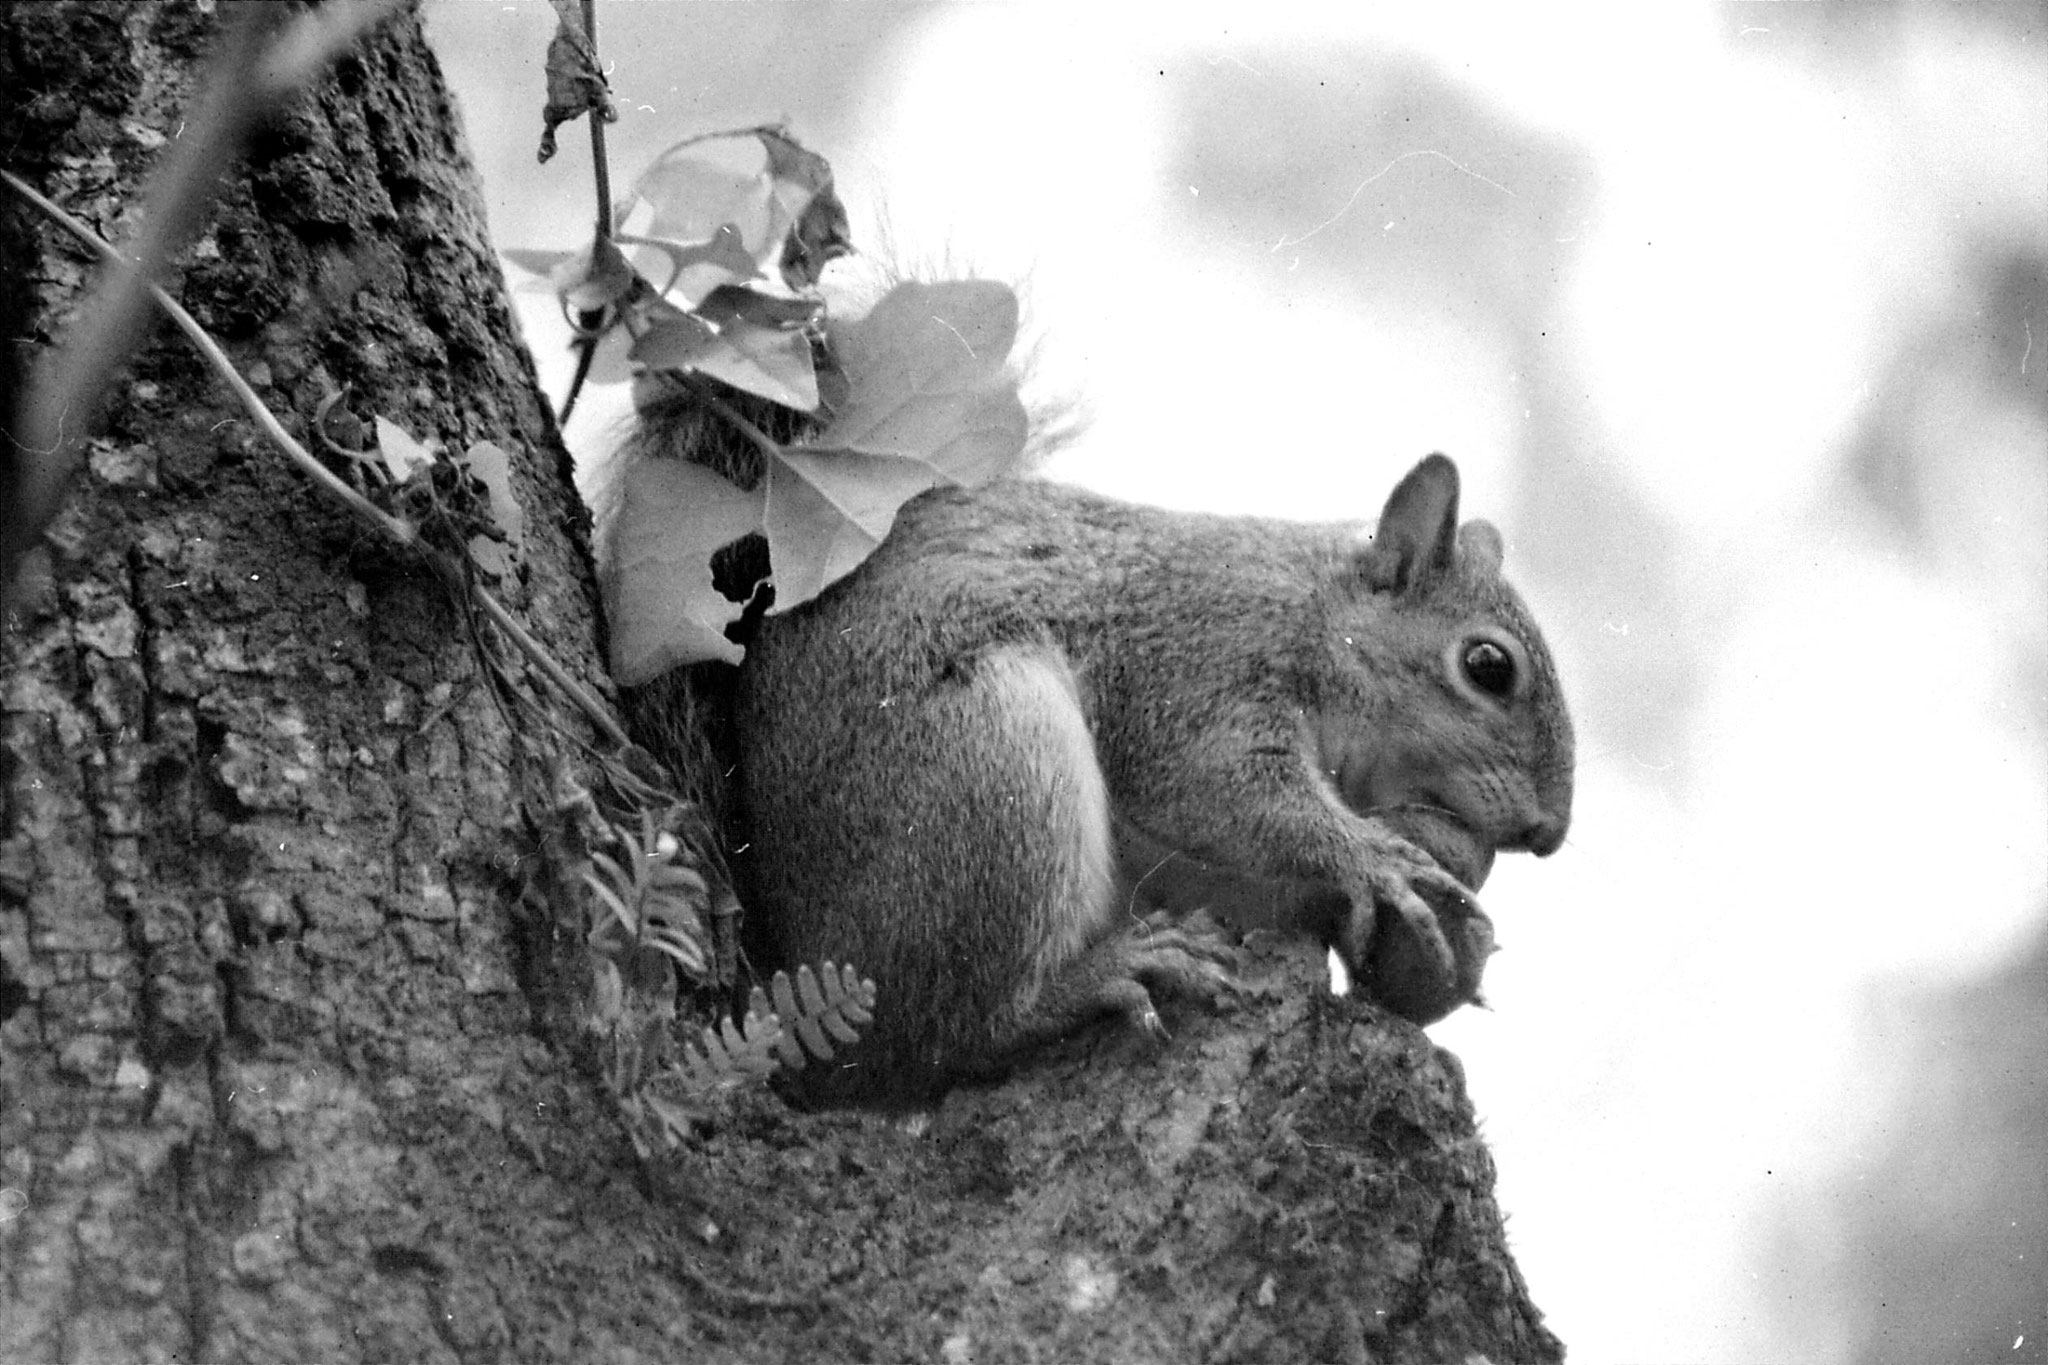 2/1/1991: 31: squirrel with nut